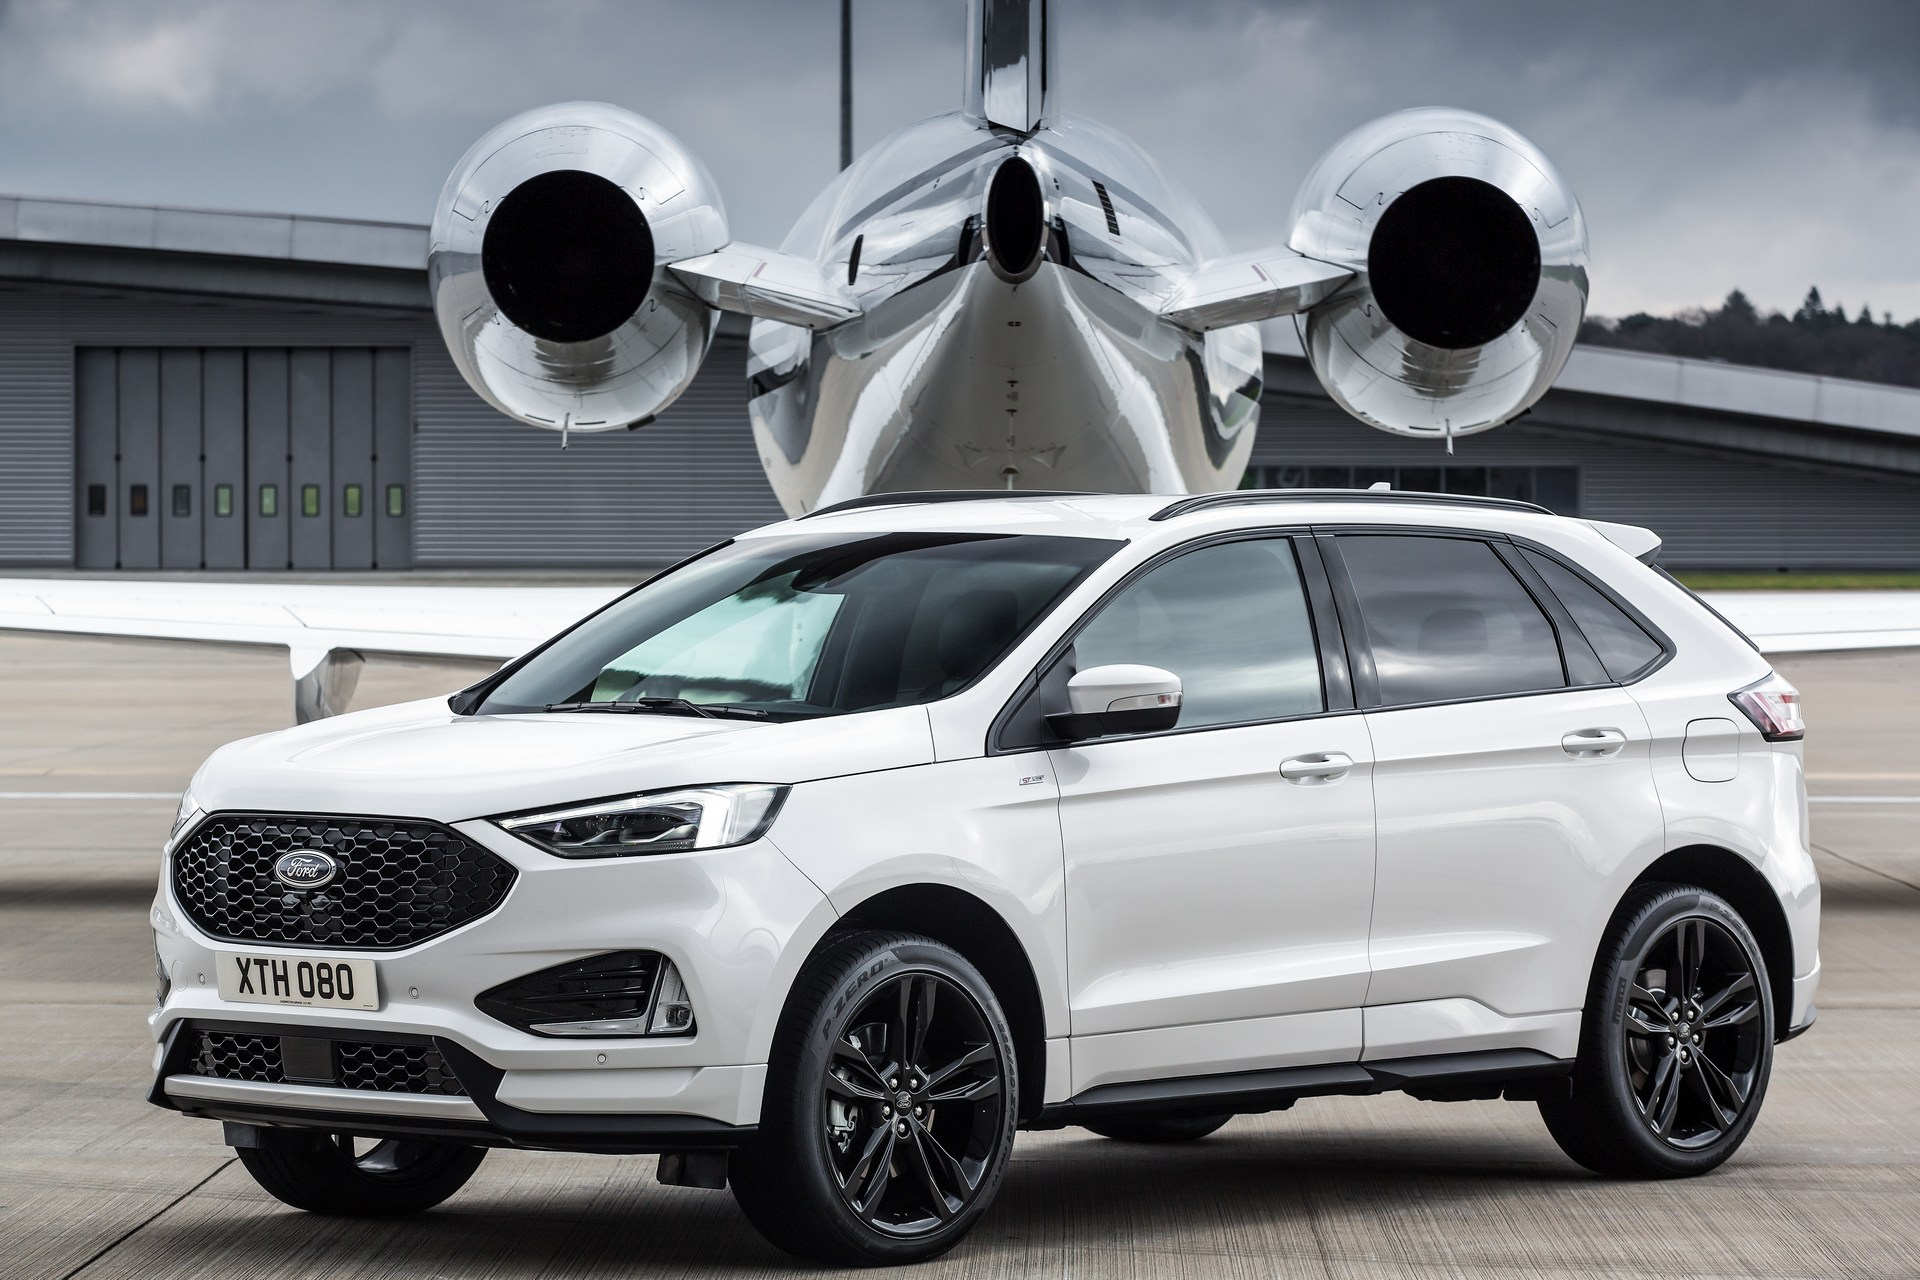 Ford Edge facelift 2018 Euro-Spec (7)